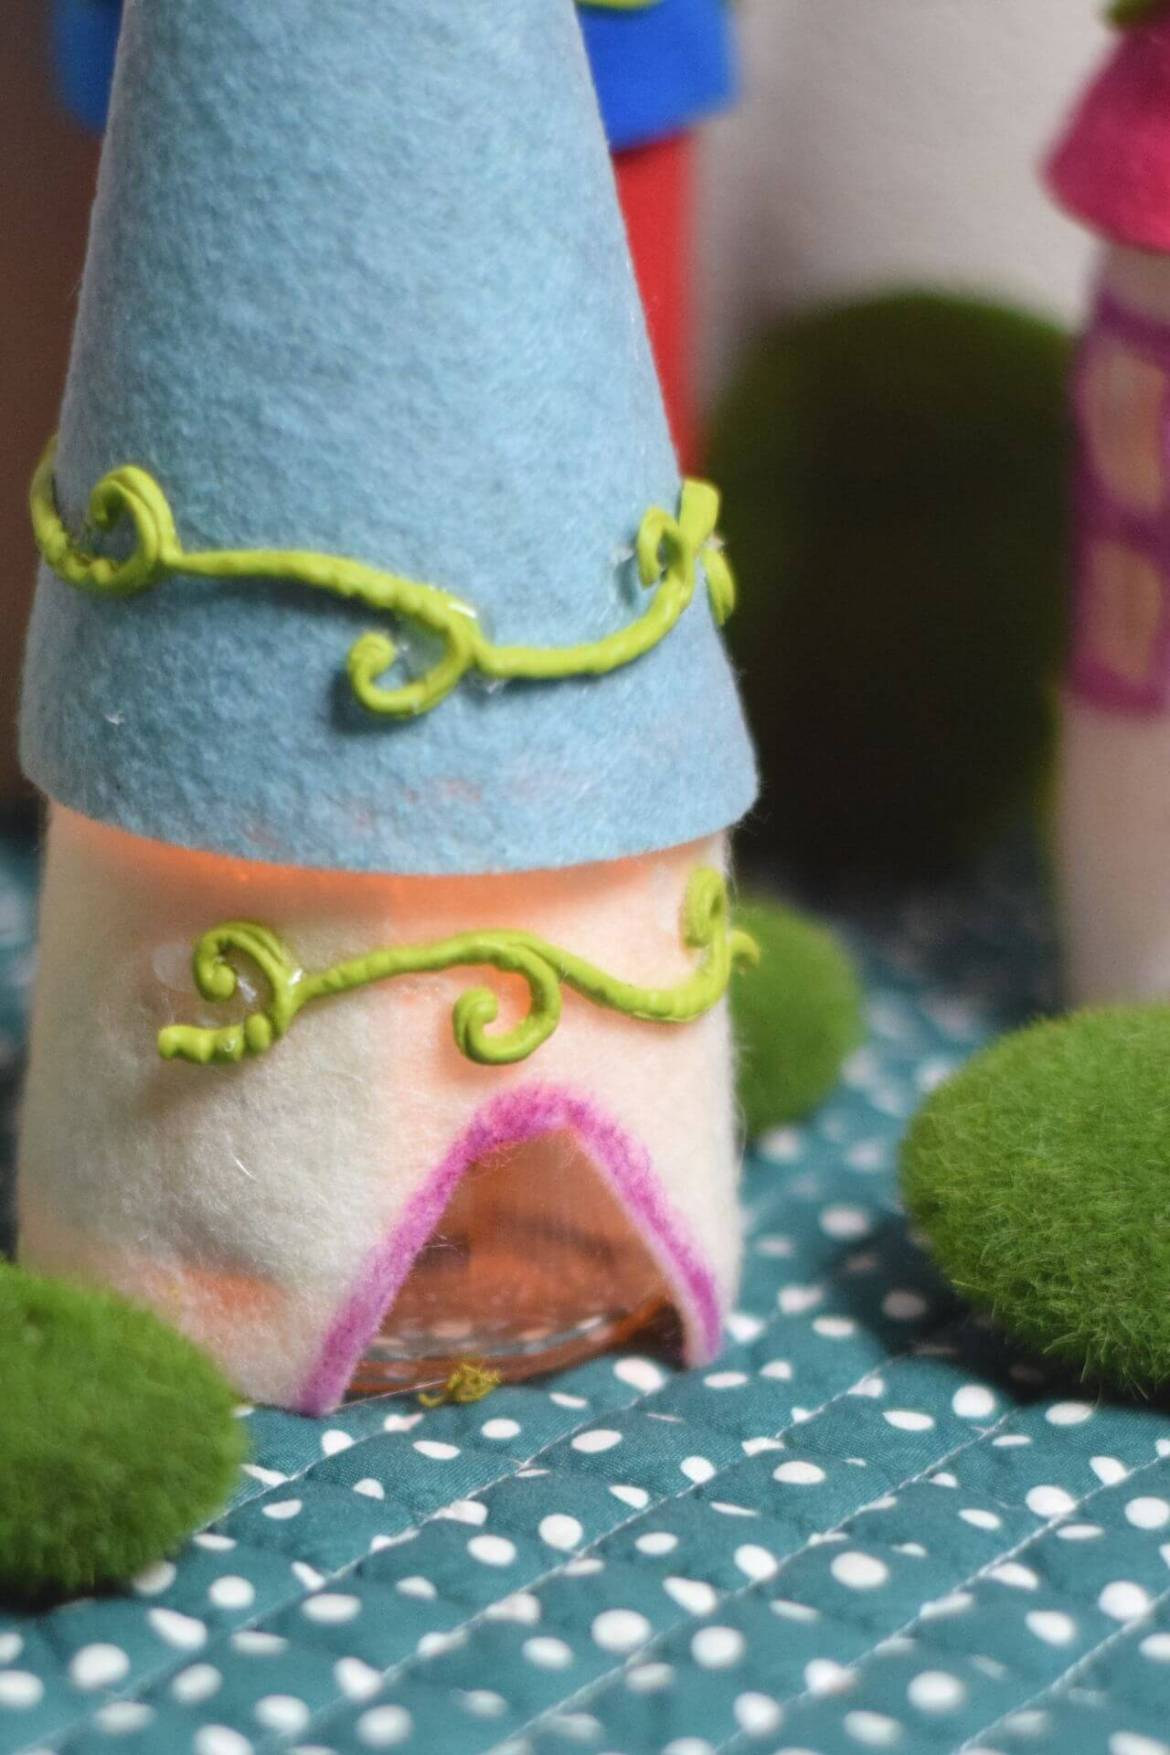 A close up of the entrance to the flickering fairy house.